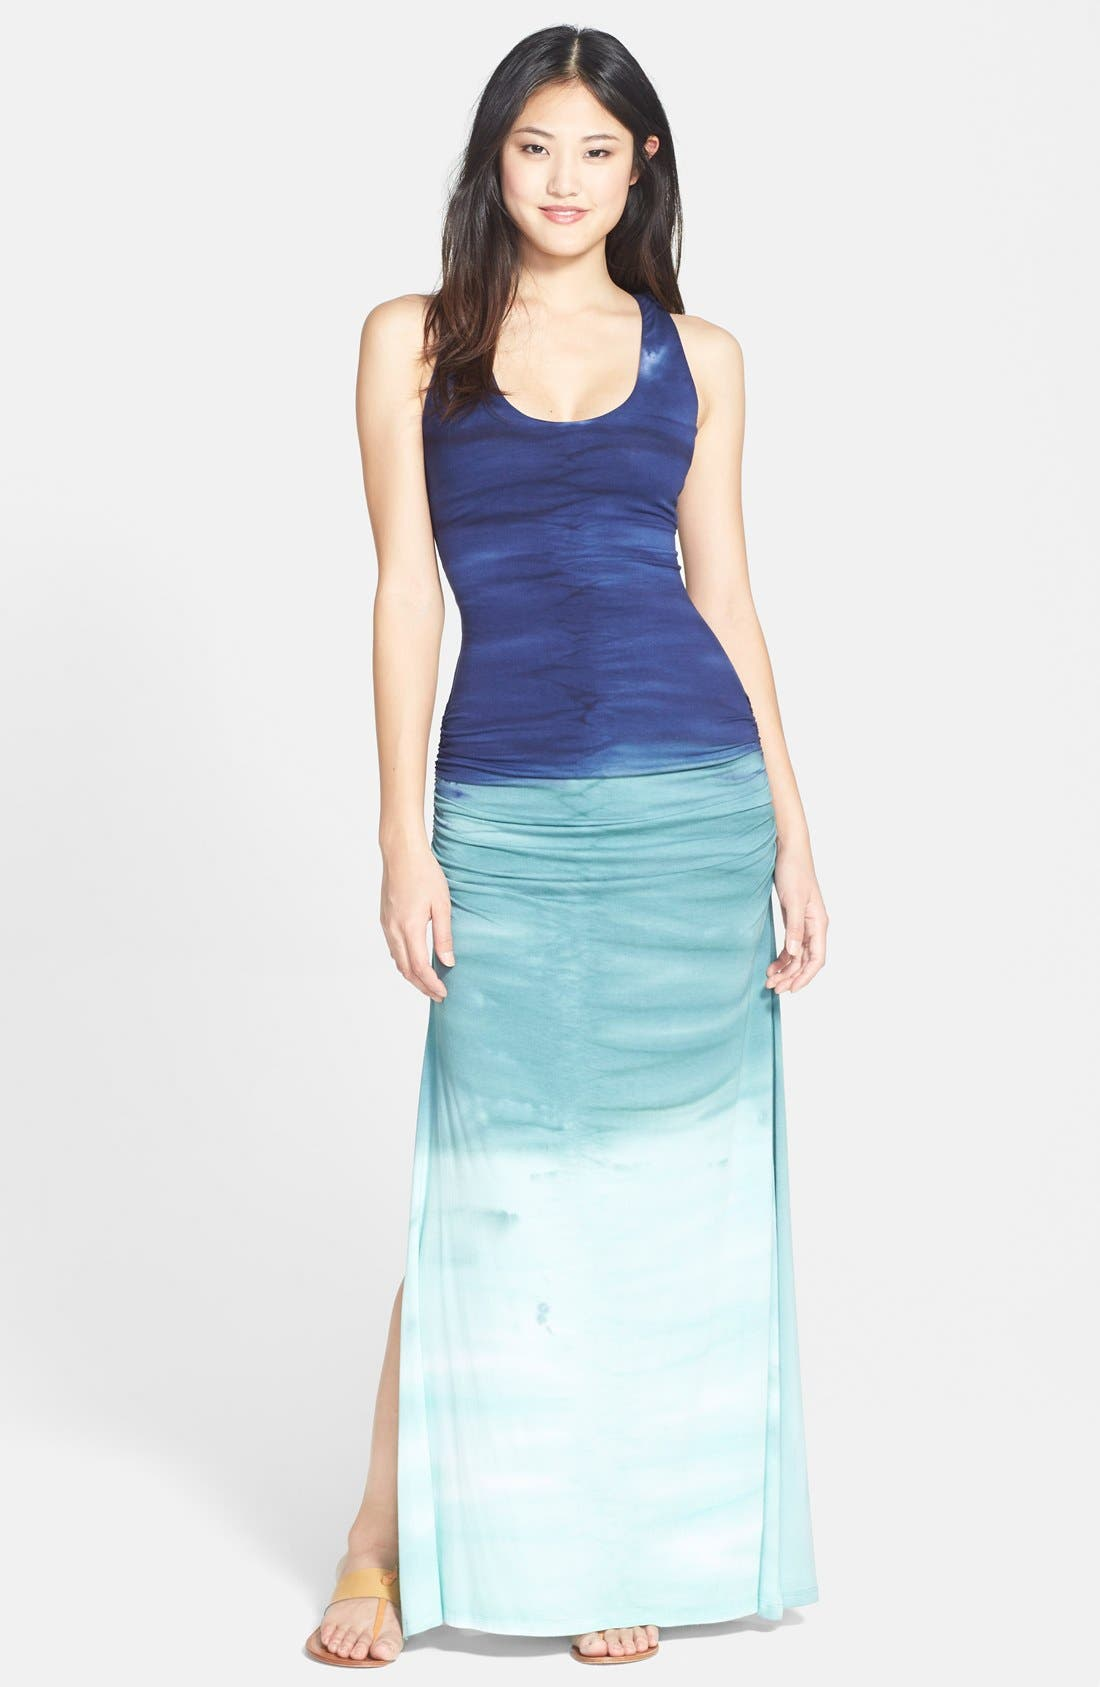 Main Image - Sky Crochet Back Ruched Tie-Dye Maxi Dress